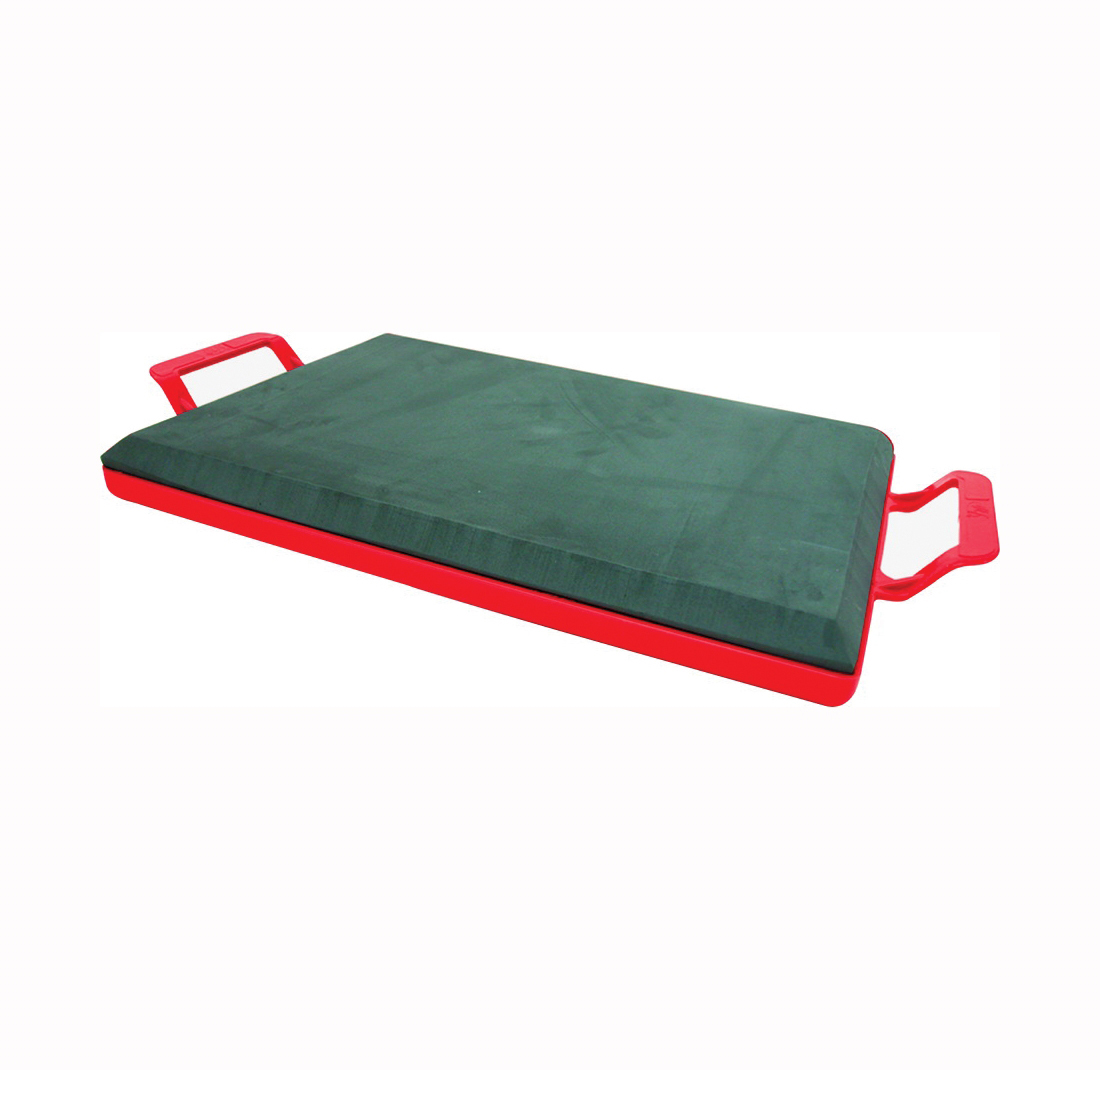 Picture of Marshalltown KB451 Kneeler Board With Plastic Side Handles